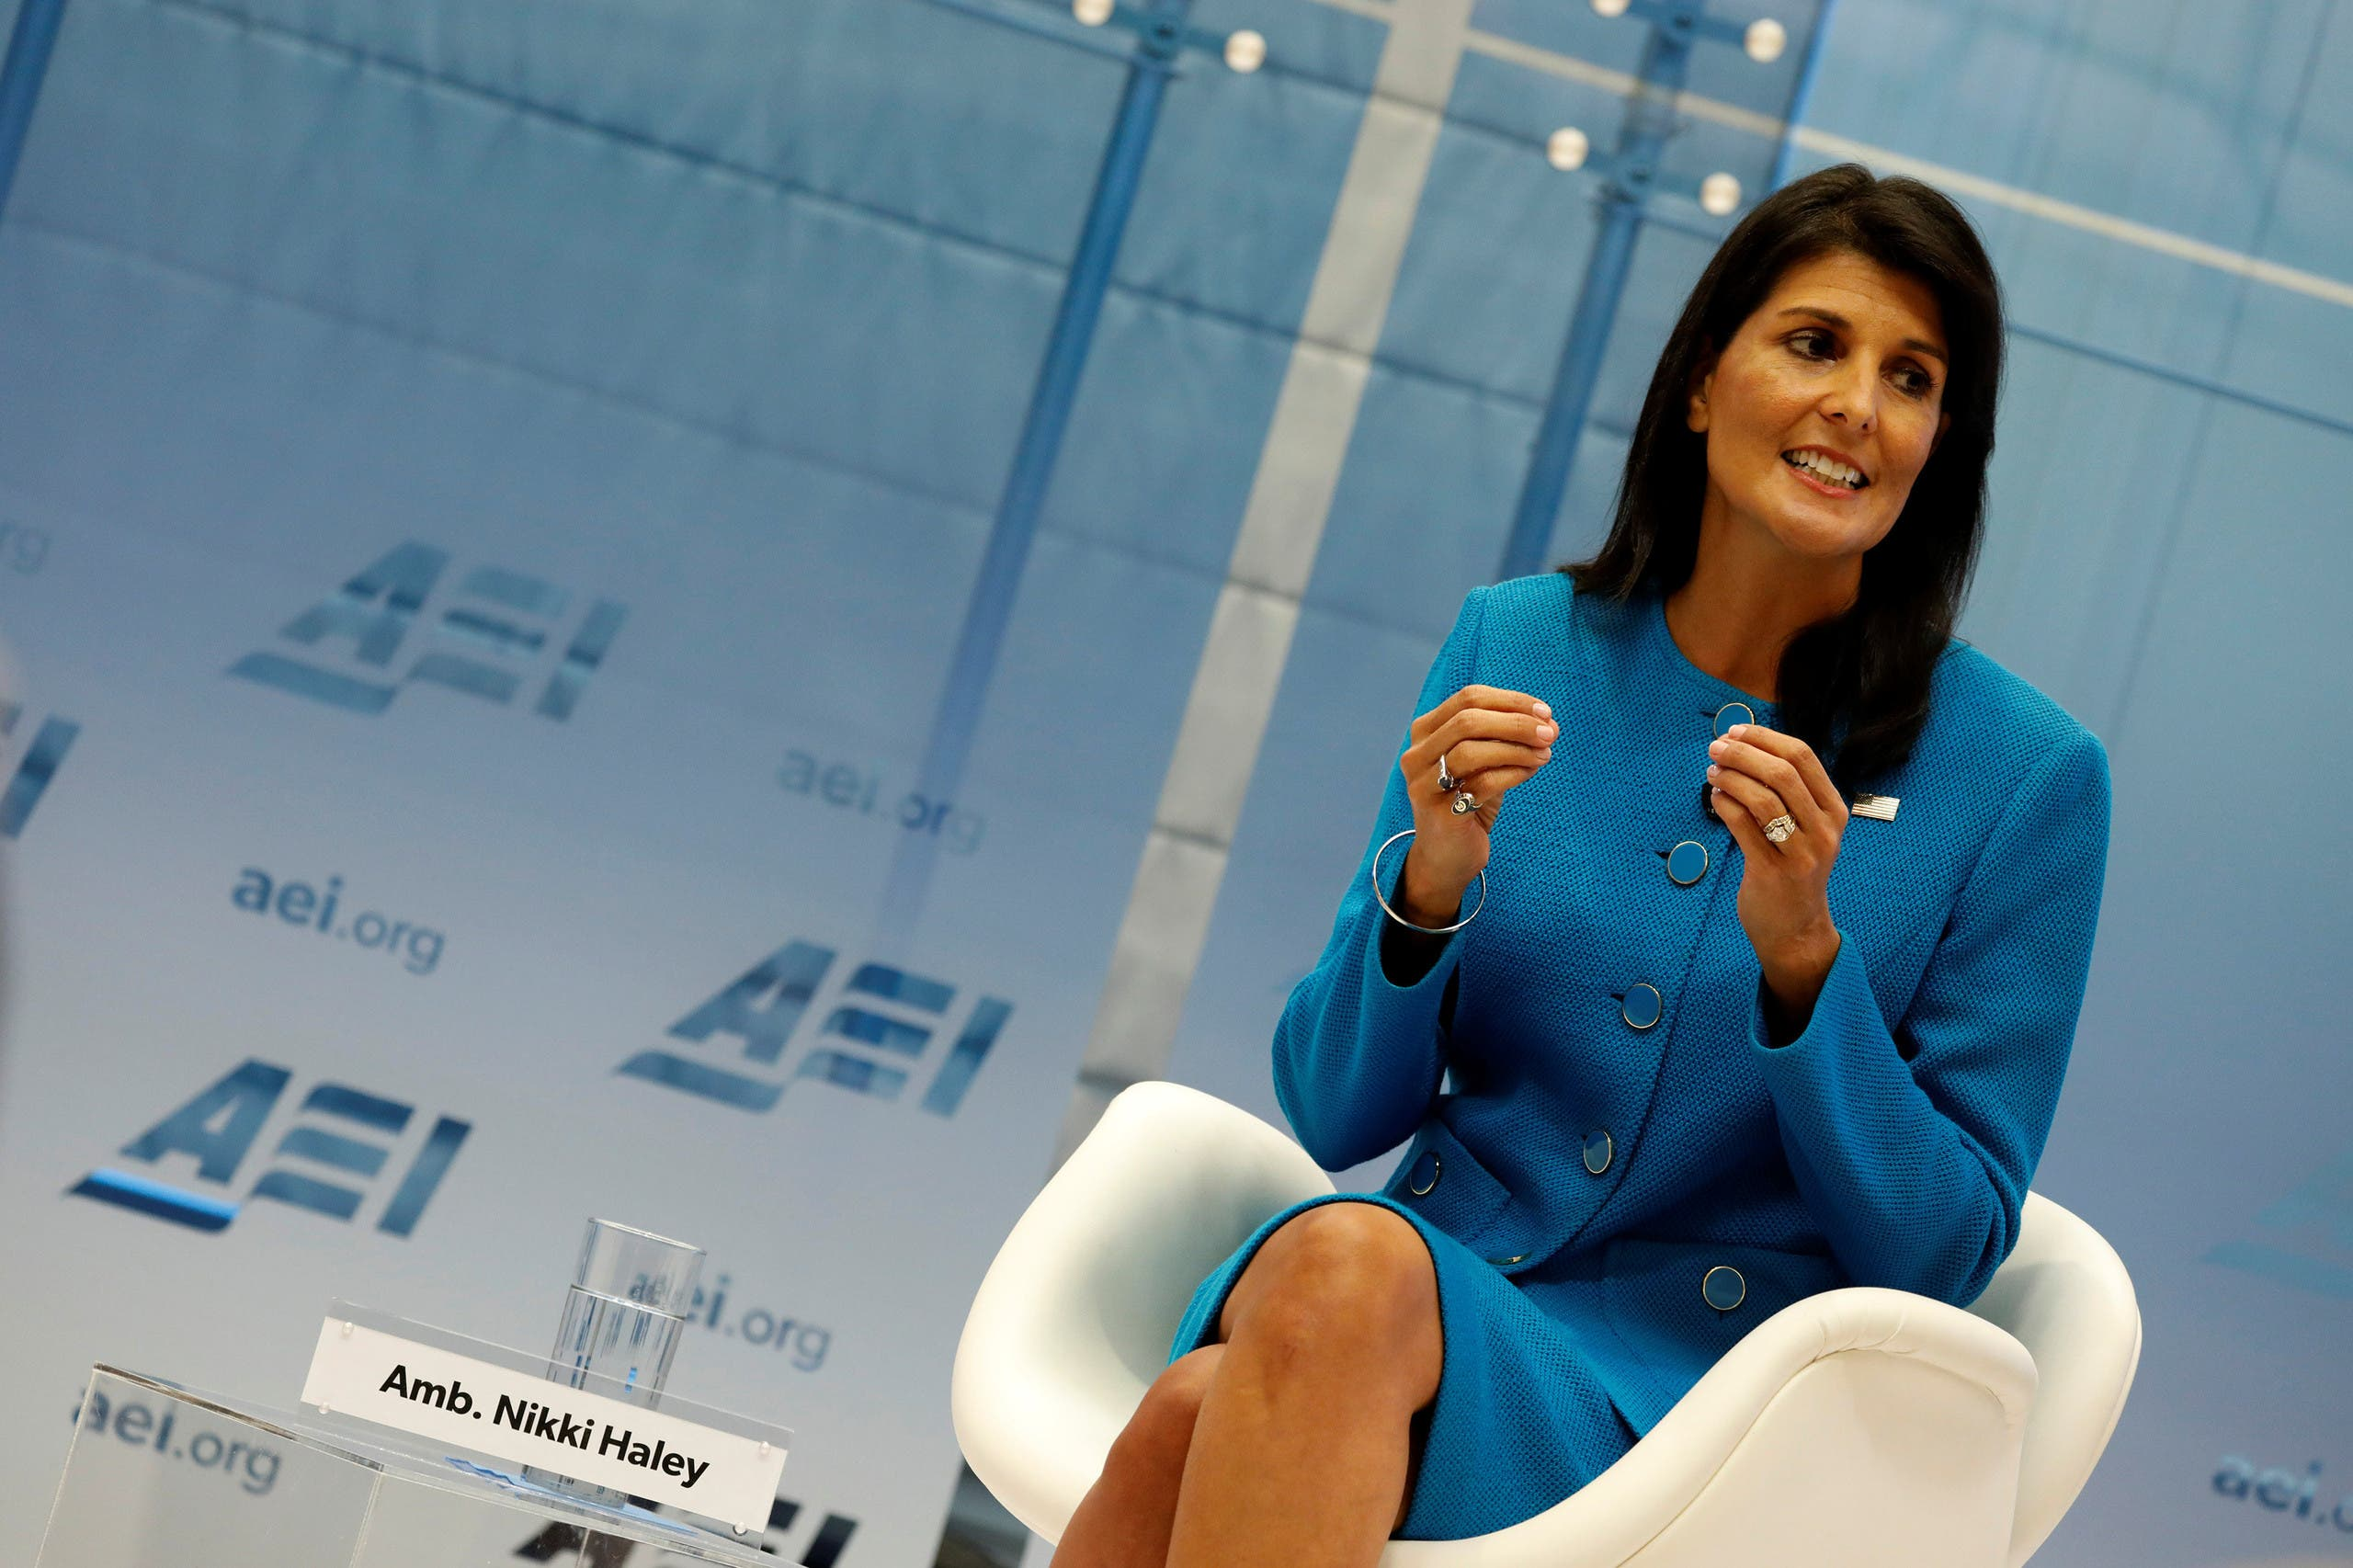 U.S. Ambassador to the United Nations Nikki Haley speaks about the Iran nuclear deal at the American Enterprise Institute in Washington, U.S., September 5, 2017. REUTERS/Aaron P. Bernstein